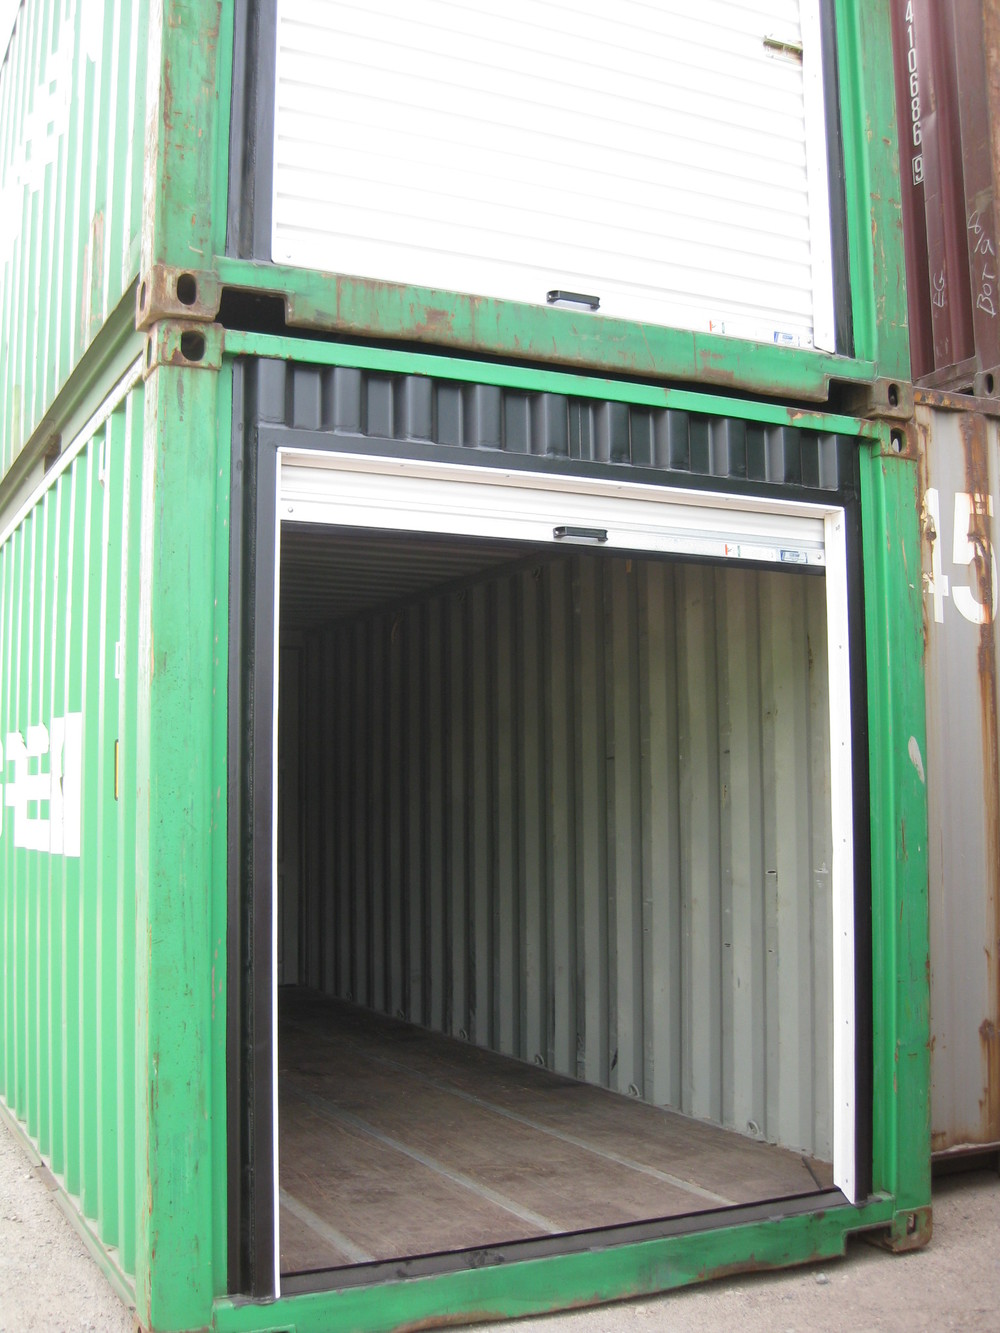 Stand Alone Storage Versus Lean To Attached To A Barn, Shop Or Shed